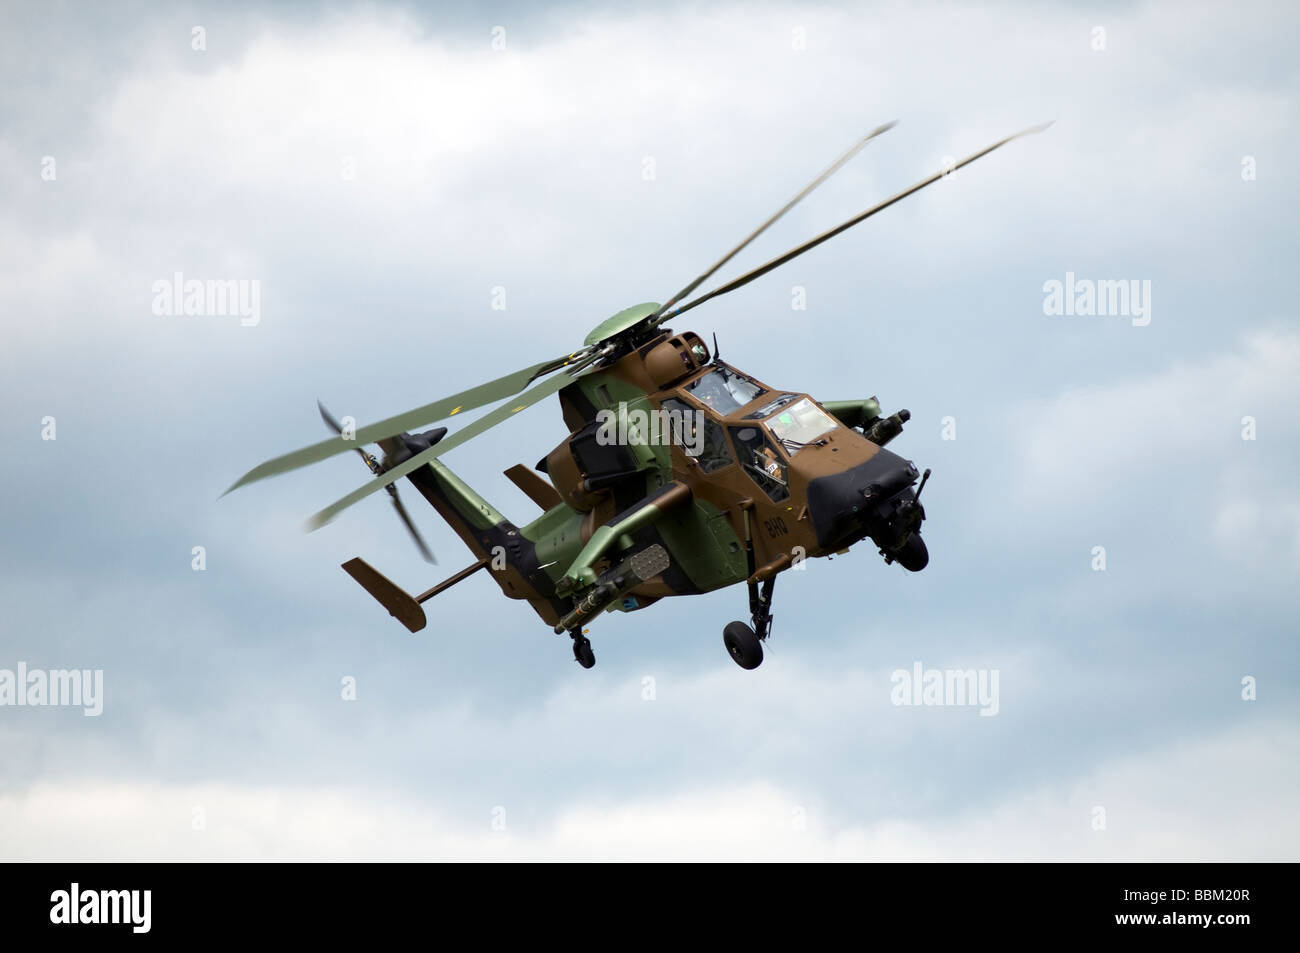 Tigre Alat 2 helicopter chopper - Stock Image